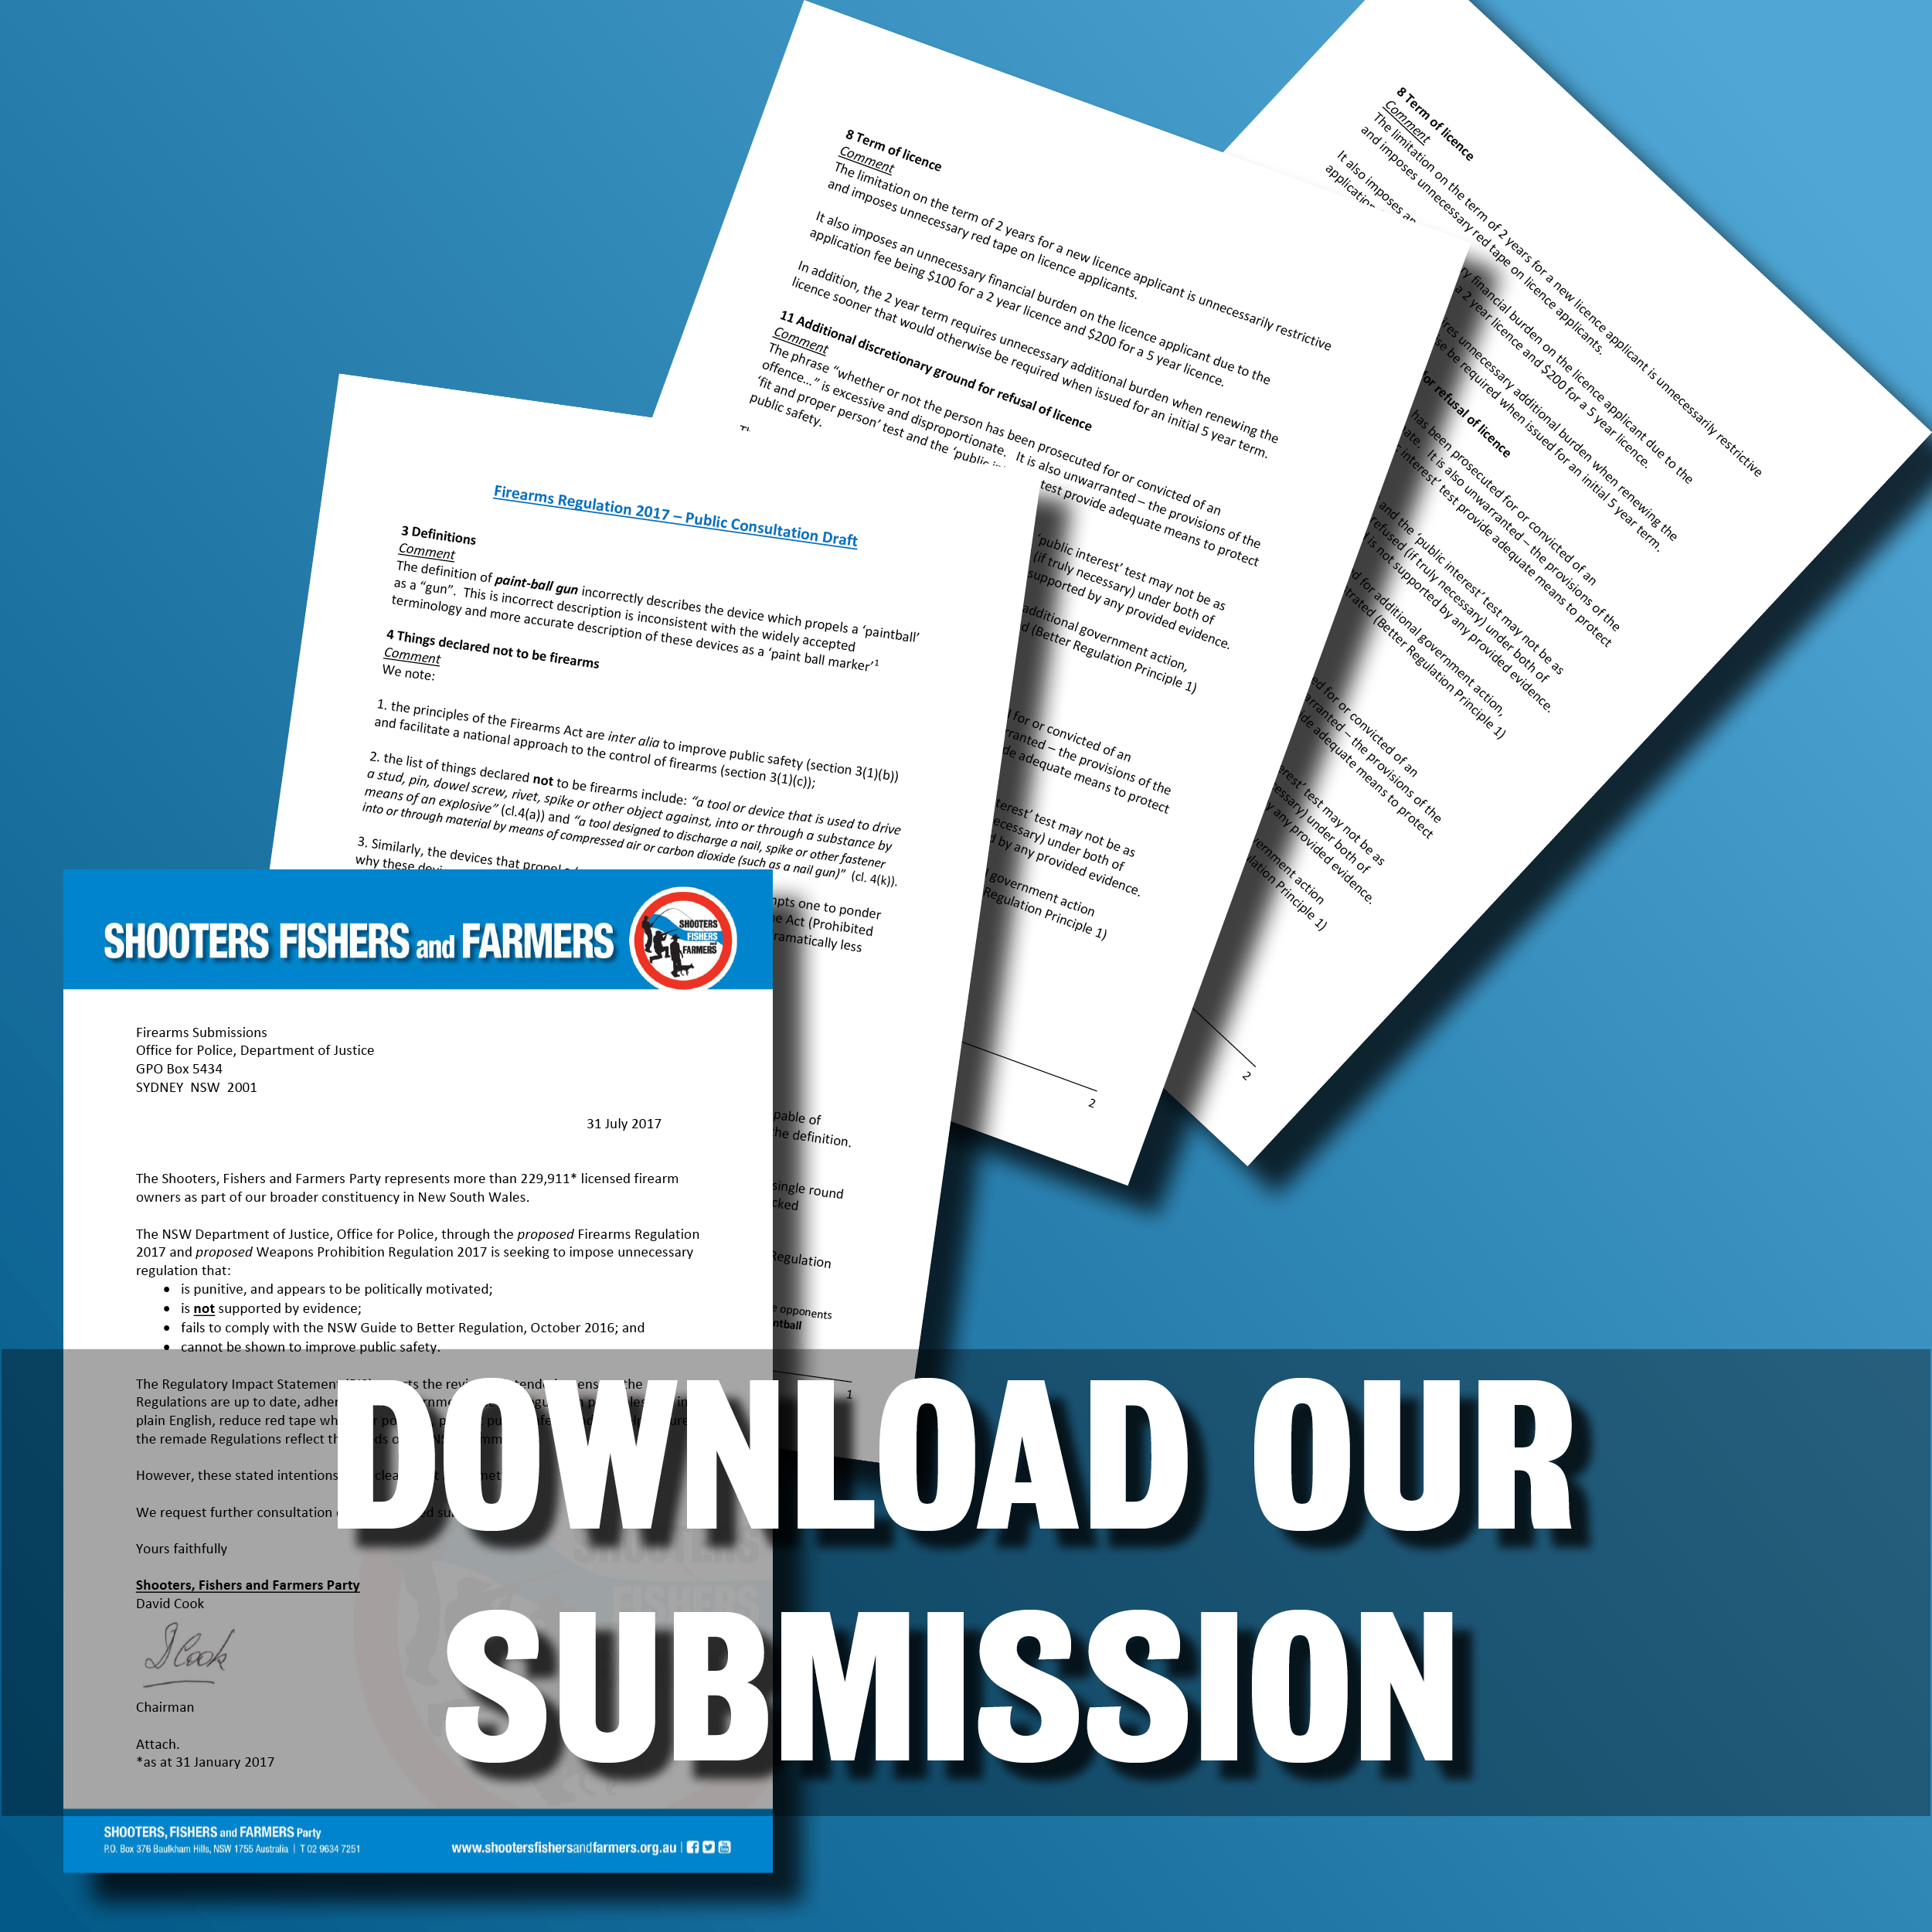 Download our submission